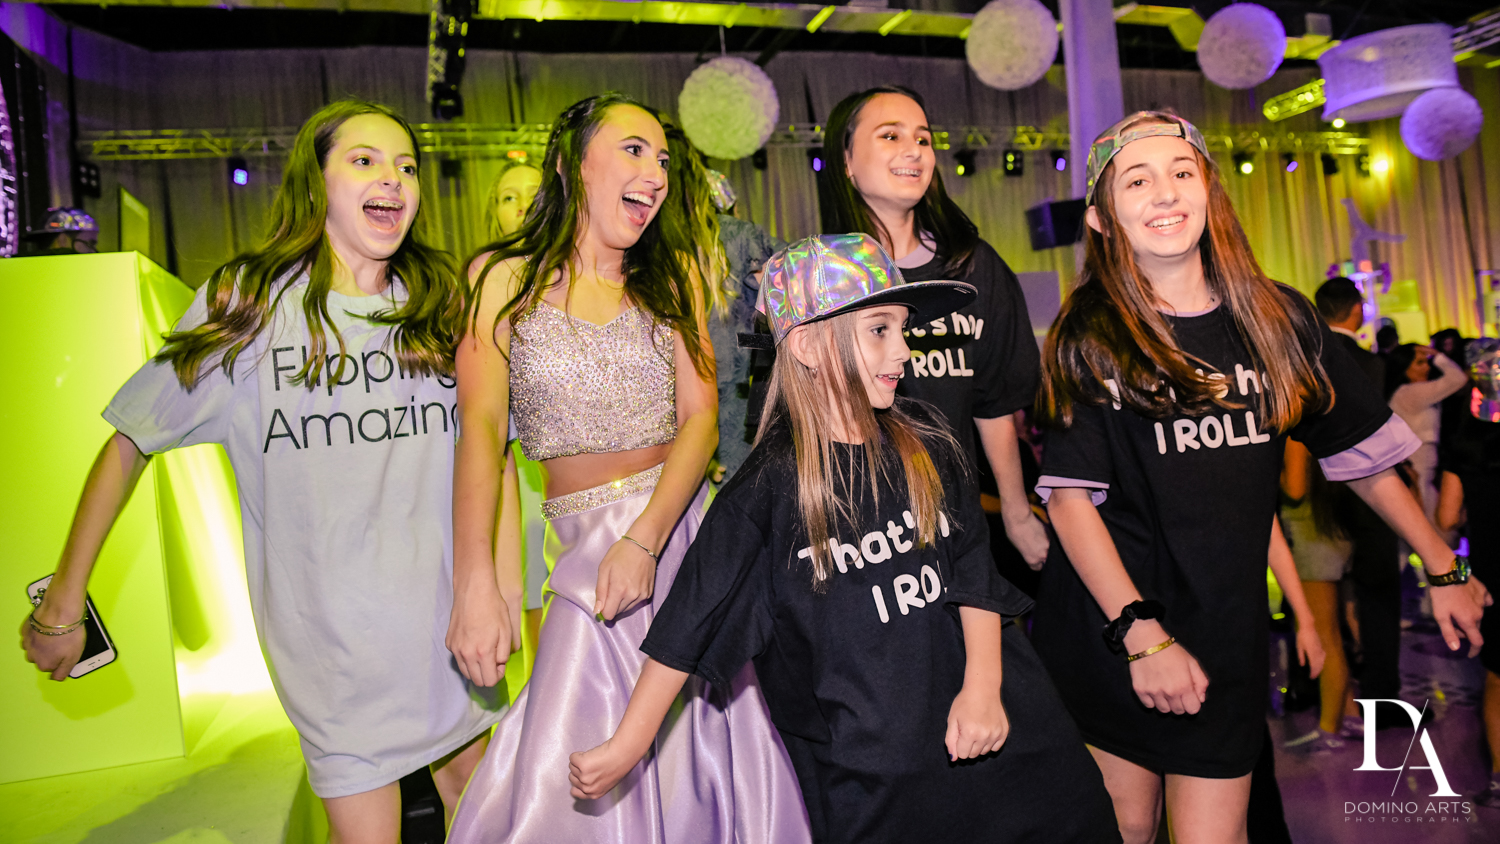 dancing pictures at Gymnastics Theme Bat Mitzvah at Xtreme Action Park by Domino Arts